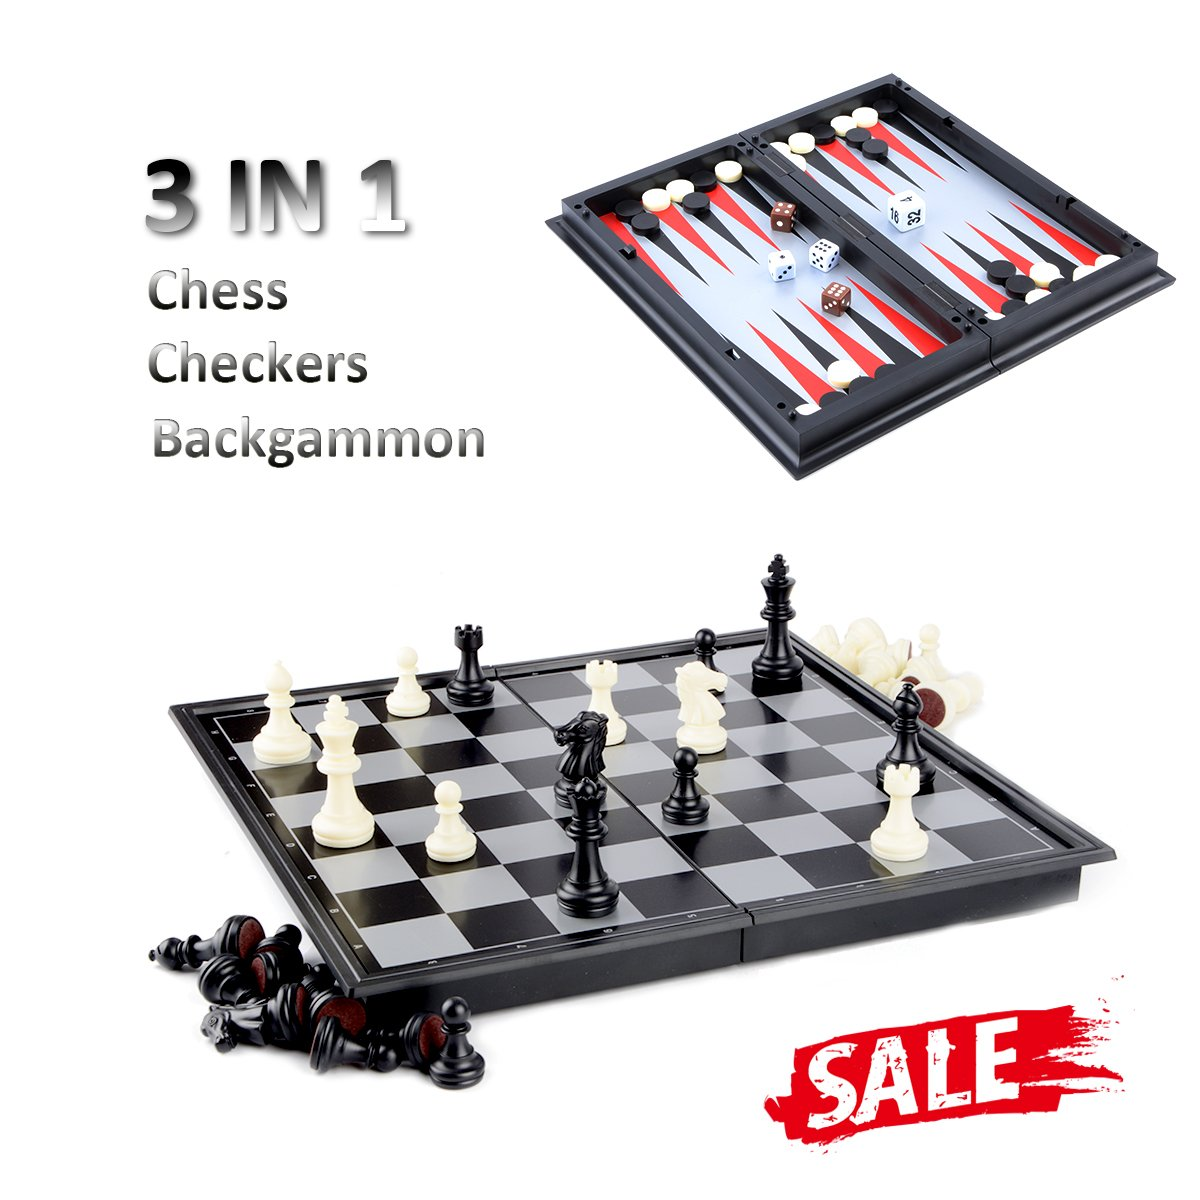 Hoshin Chess / Checkers / Backgammon 3 in 1 Set, Portable Folding Travel Magnetic Chess Board for Kids, 9.8 x 9.8 x 0.8 Inch by Hoshin